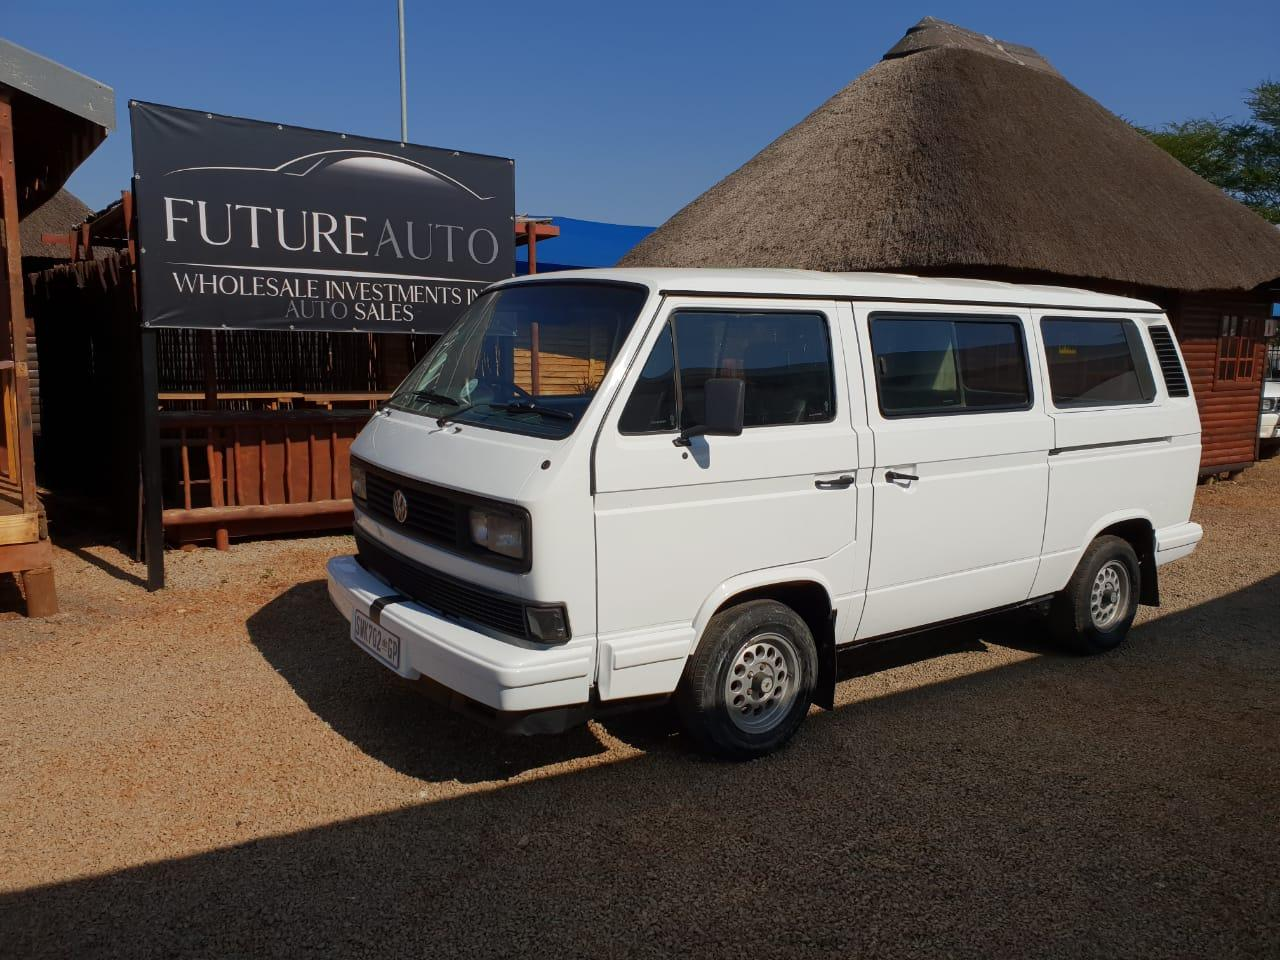 Vw Microbus For Sale >> 1989 White Vw Microbus For Sale Zambezi Public Ads